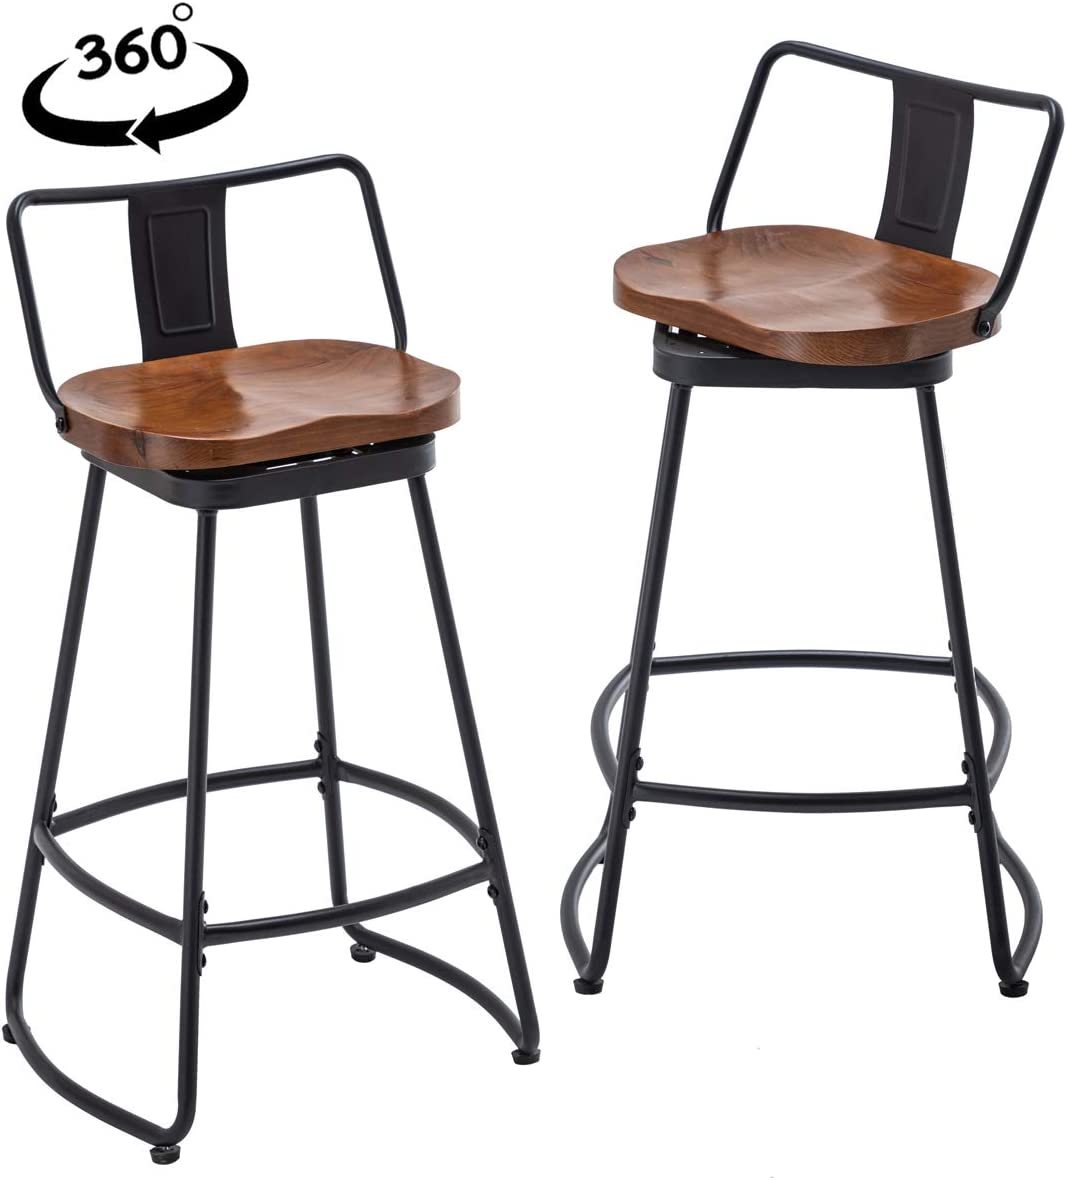 YongQiang Metal Bar Stools Set of 2 Low Back Swivel Wooden Seat Industrial Indoor Outdoor Counter Bar Chairs 30 inch Matte Black